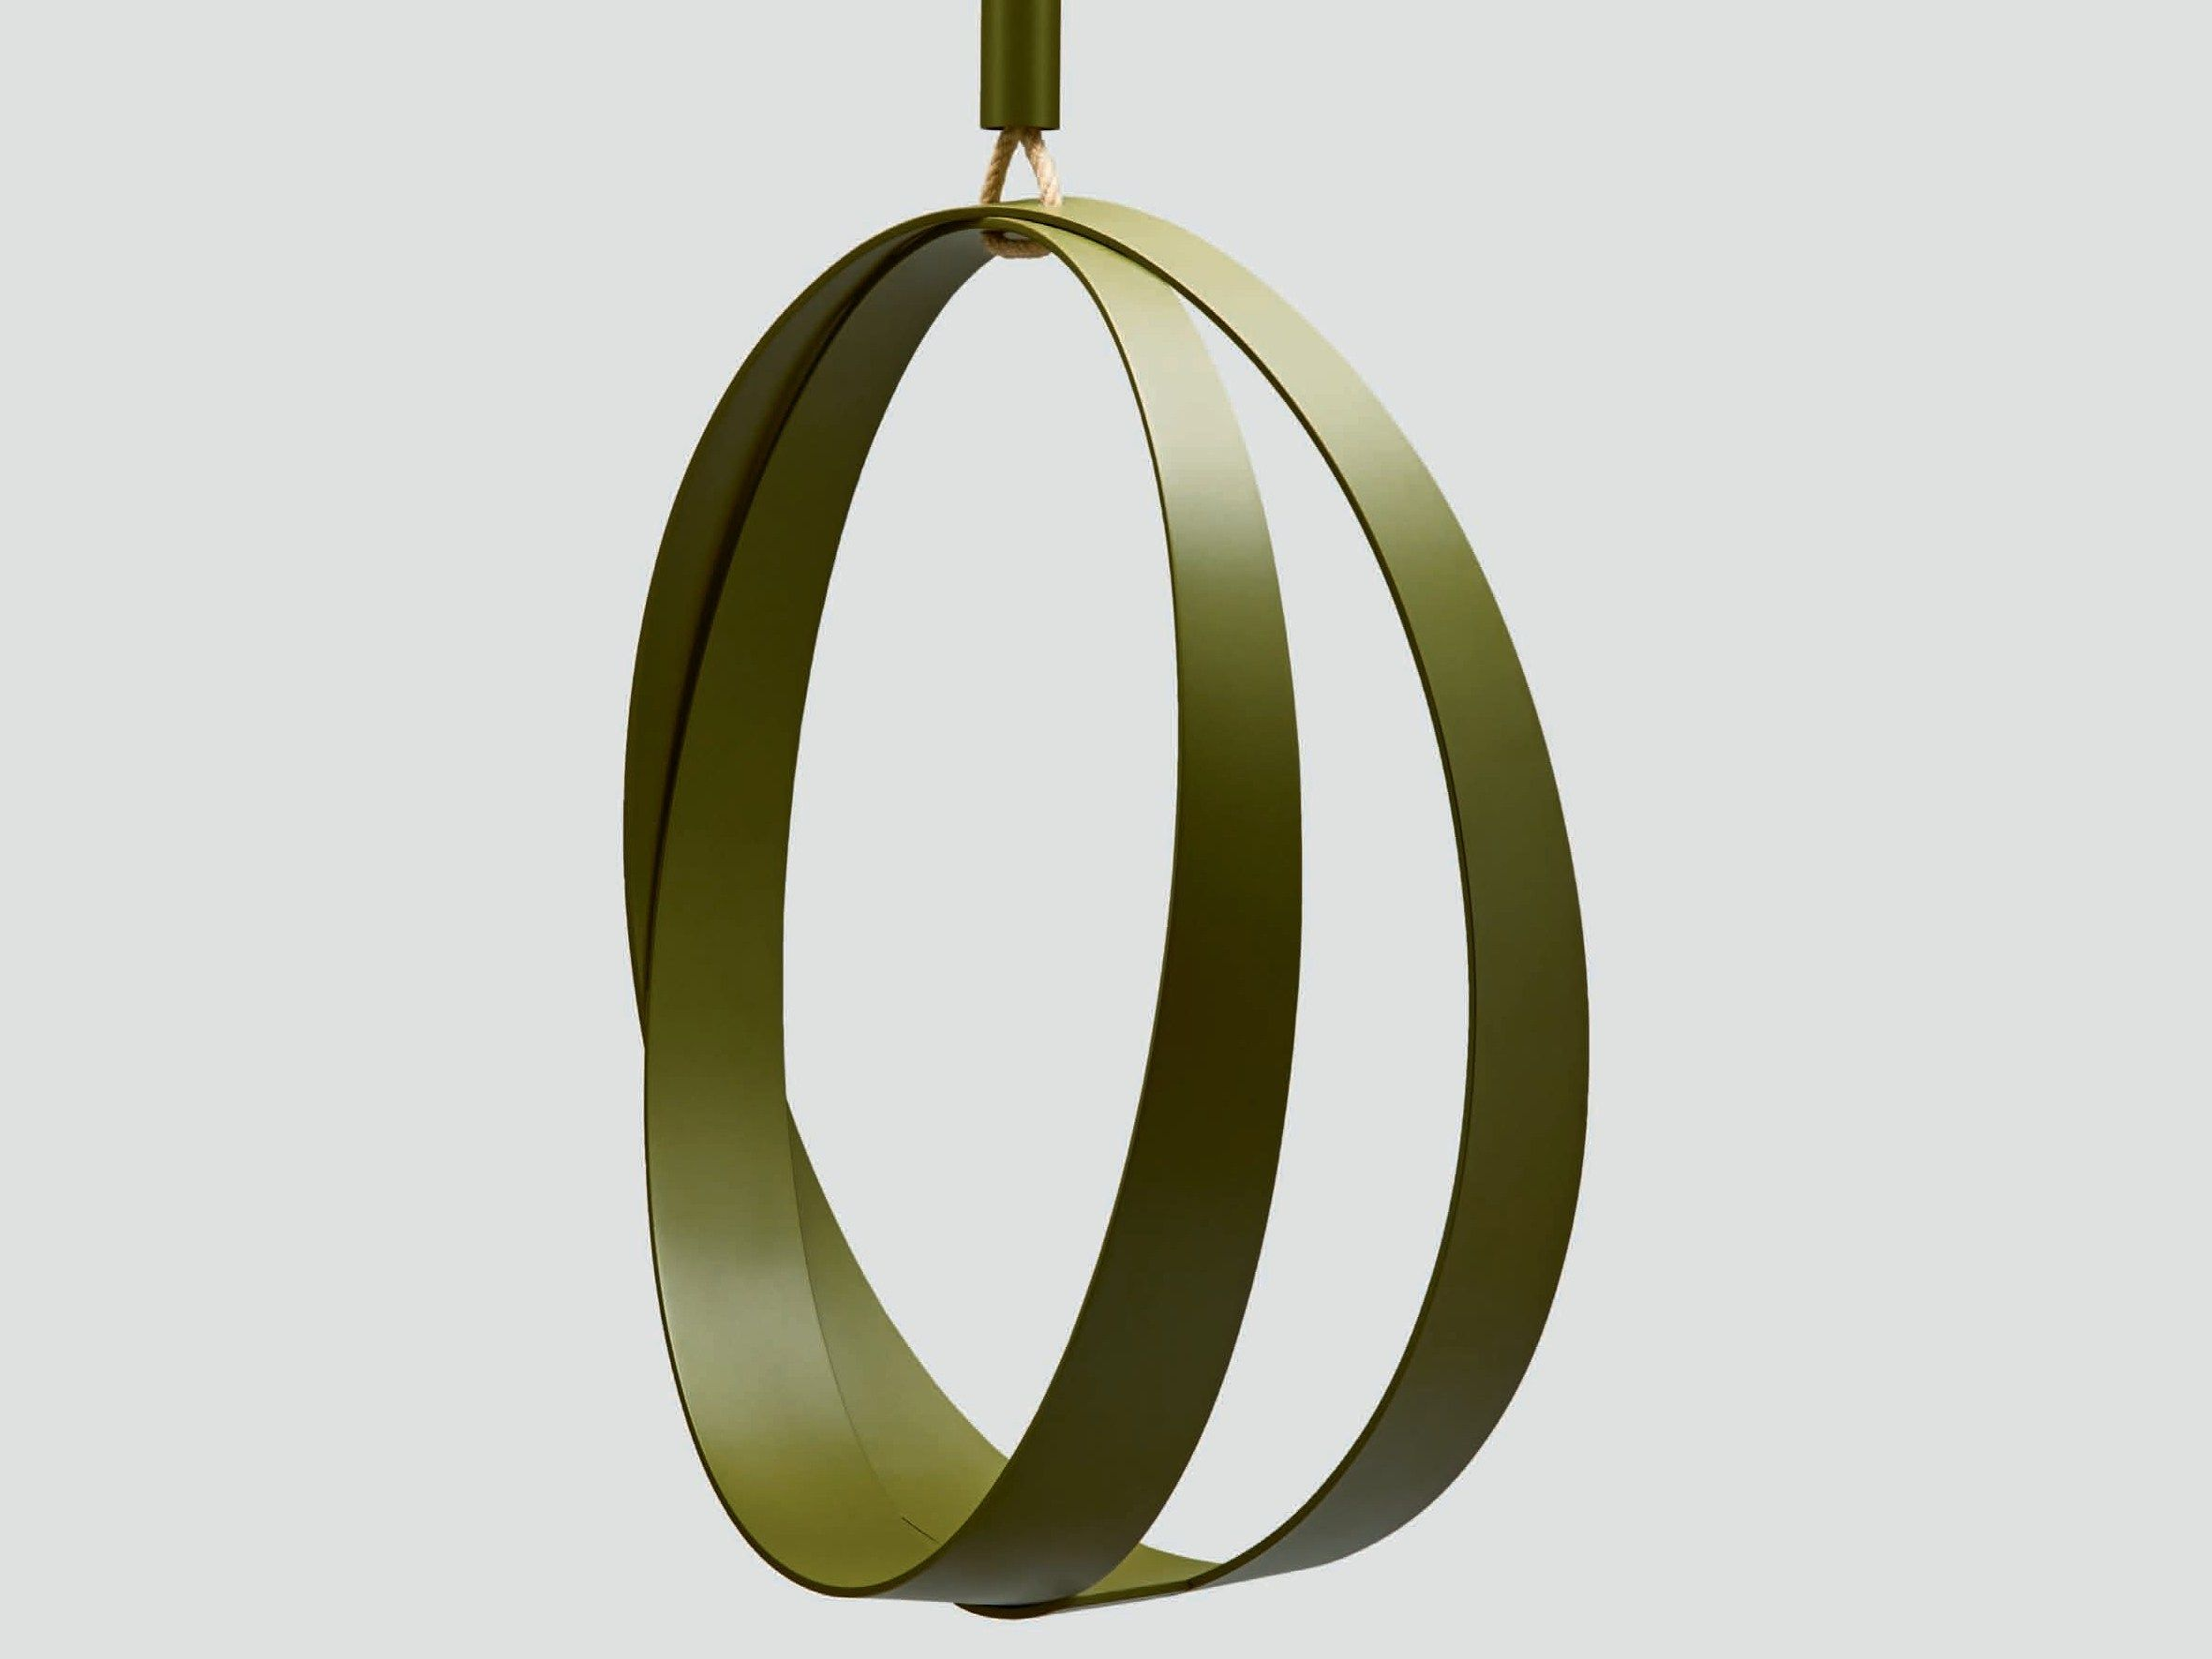 Metal Garden Hanging Chair Ring O By Da A Design Saverio